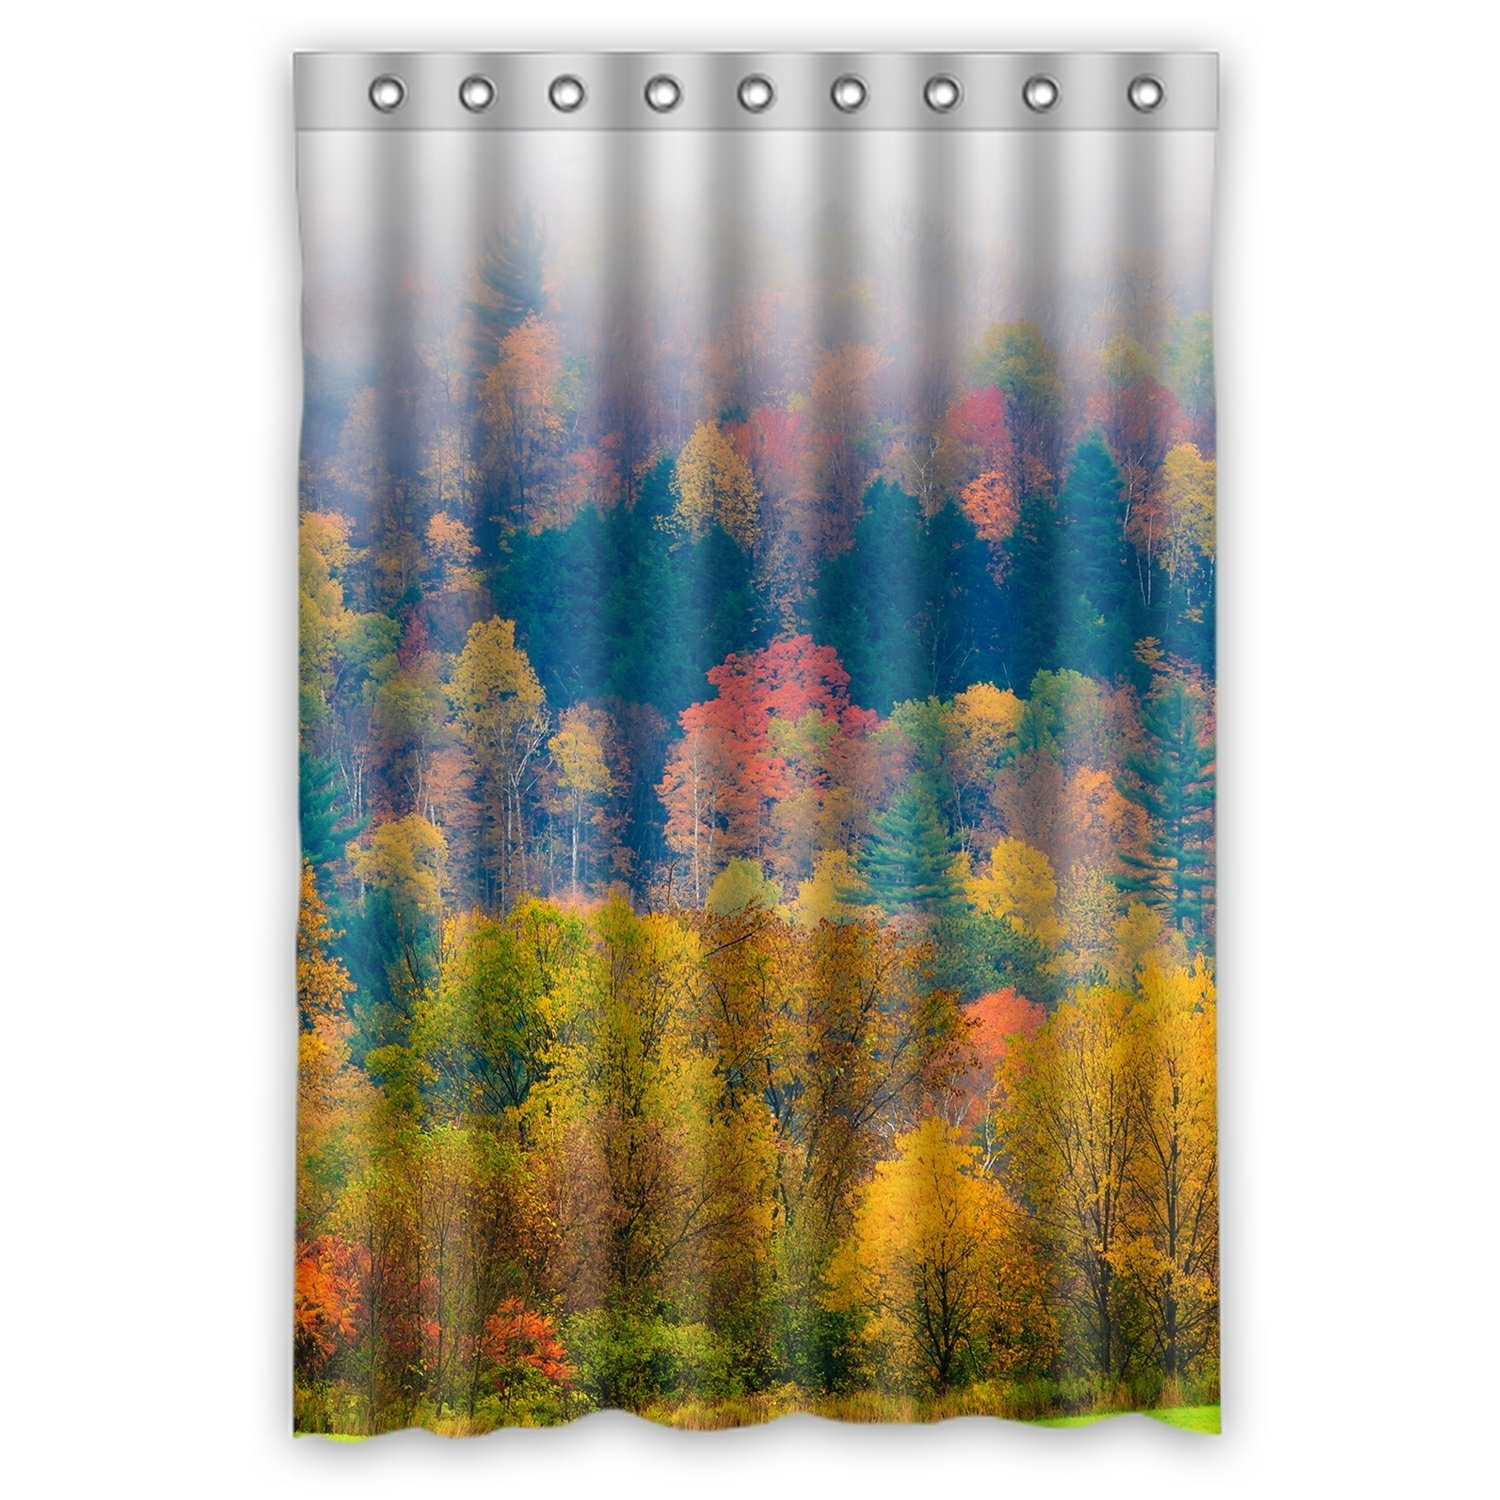 Forest Landscape Shower Curtain, Field of Trees during Fall Foliage Shower Curtain 48x72 inch